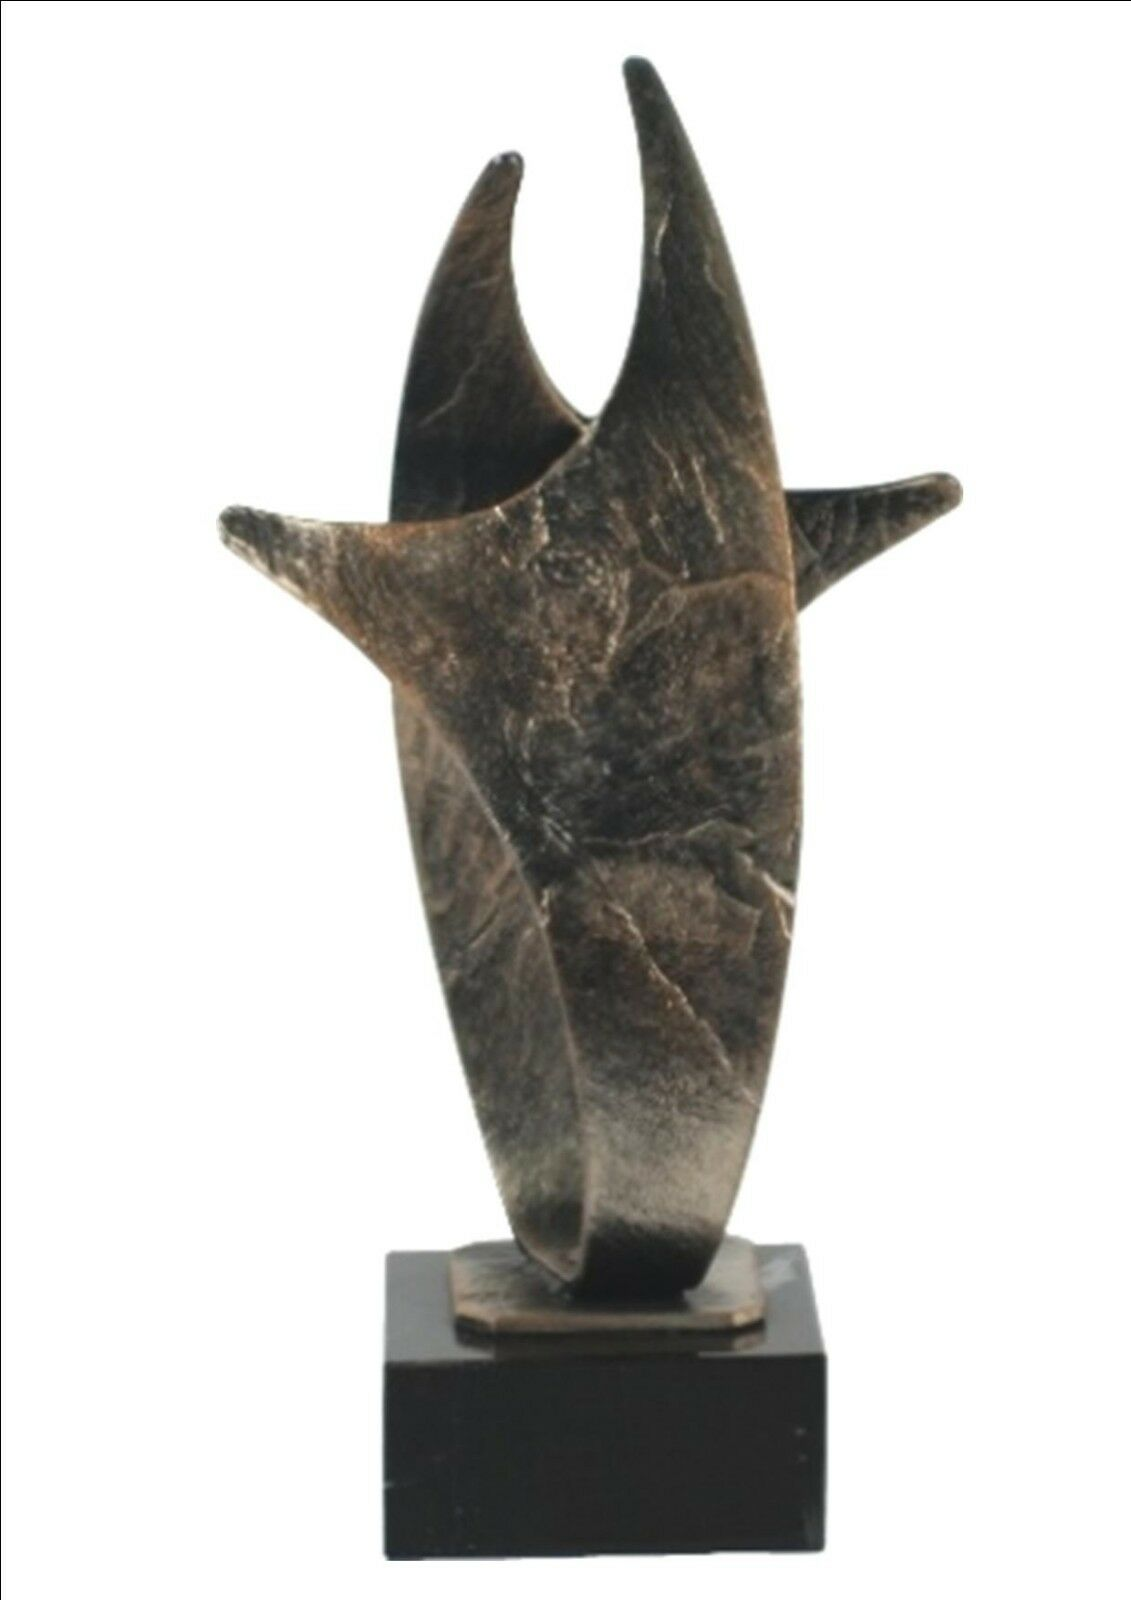 CAST METAL & MARBLE BASE ABSTRACT ART TROPHY CHAMPION WINNER FREE ENGRAVING